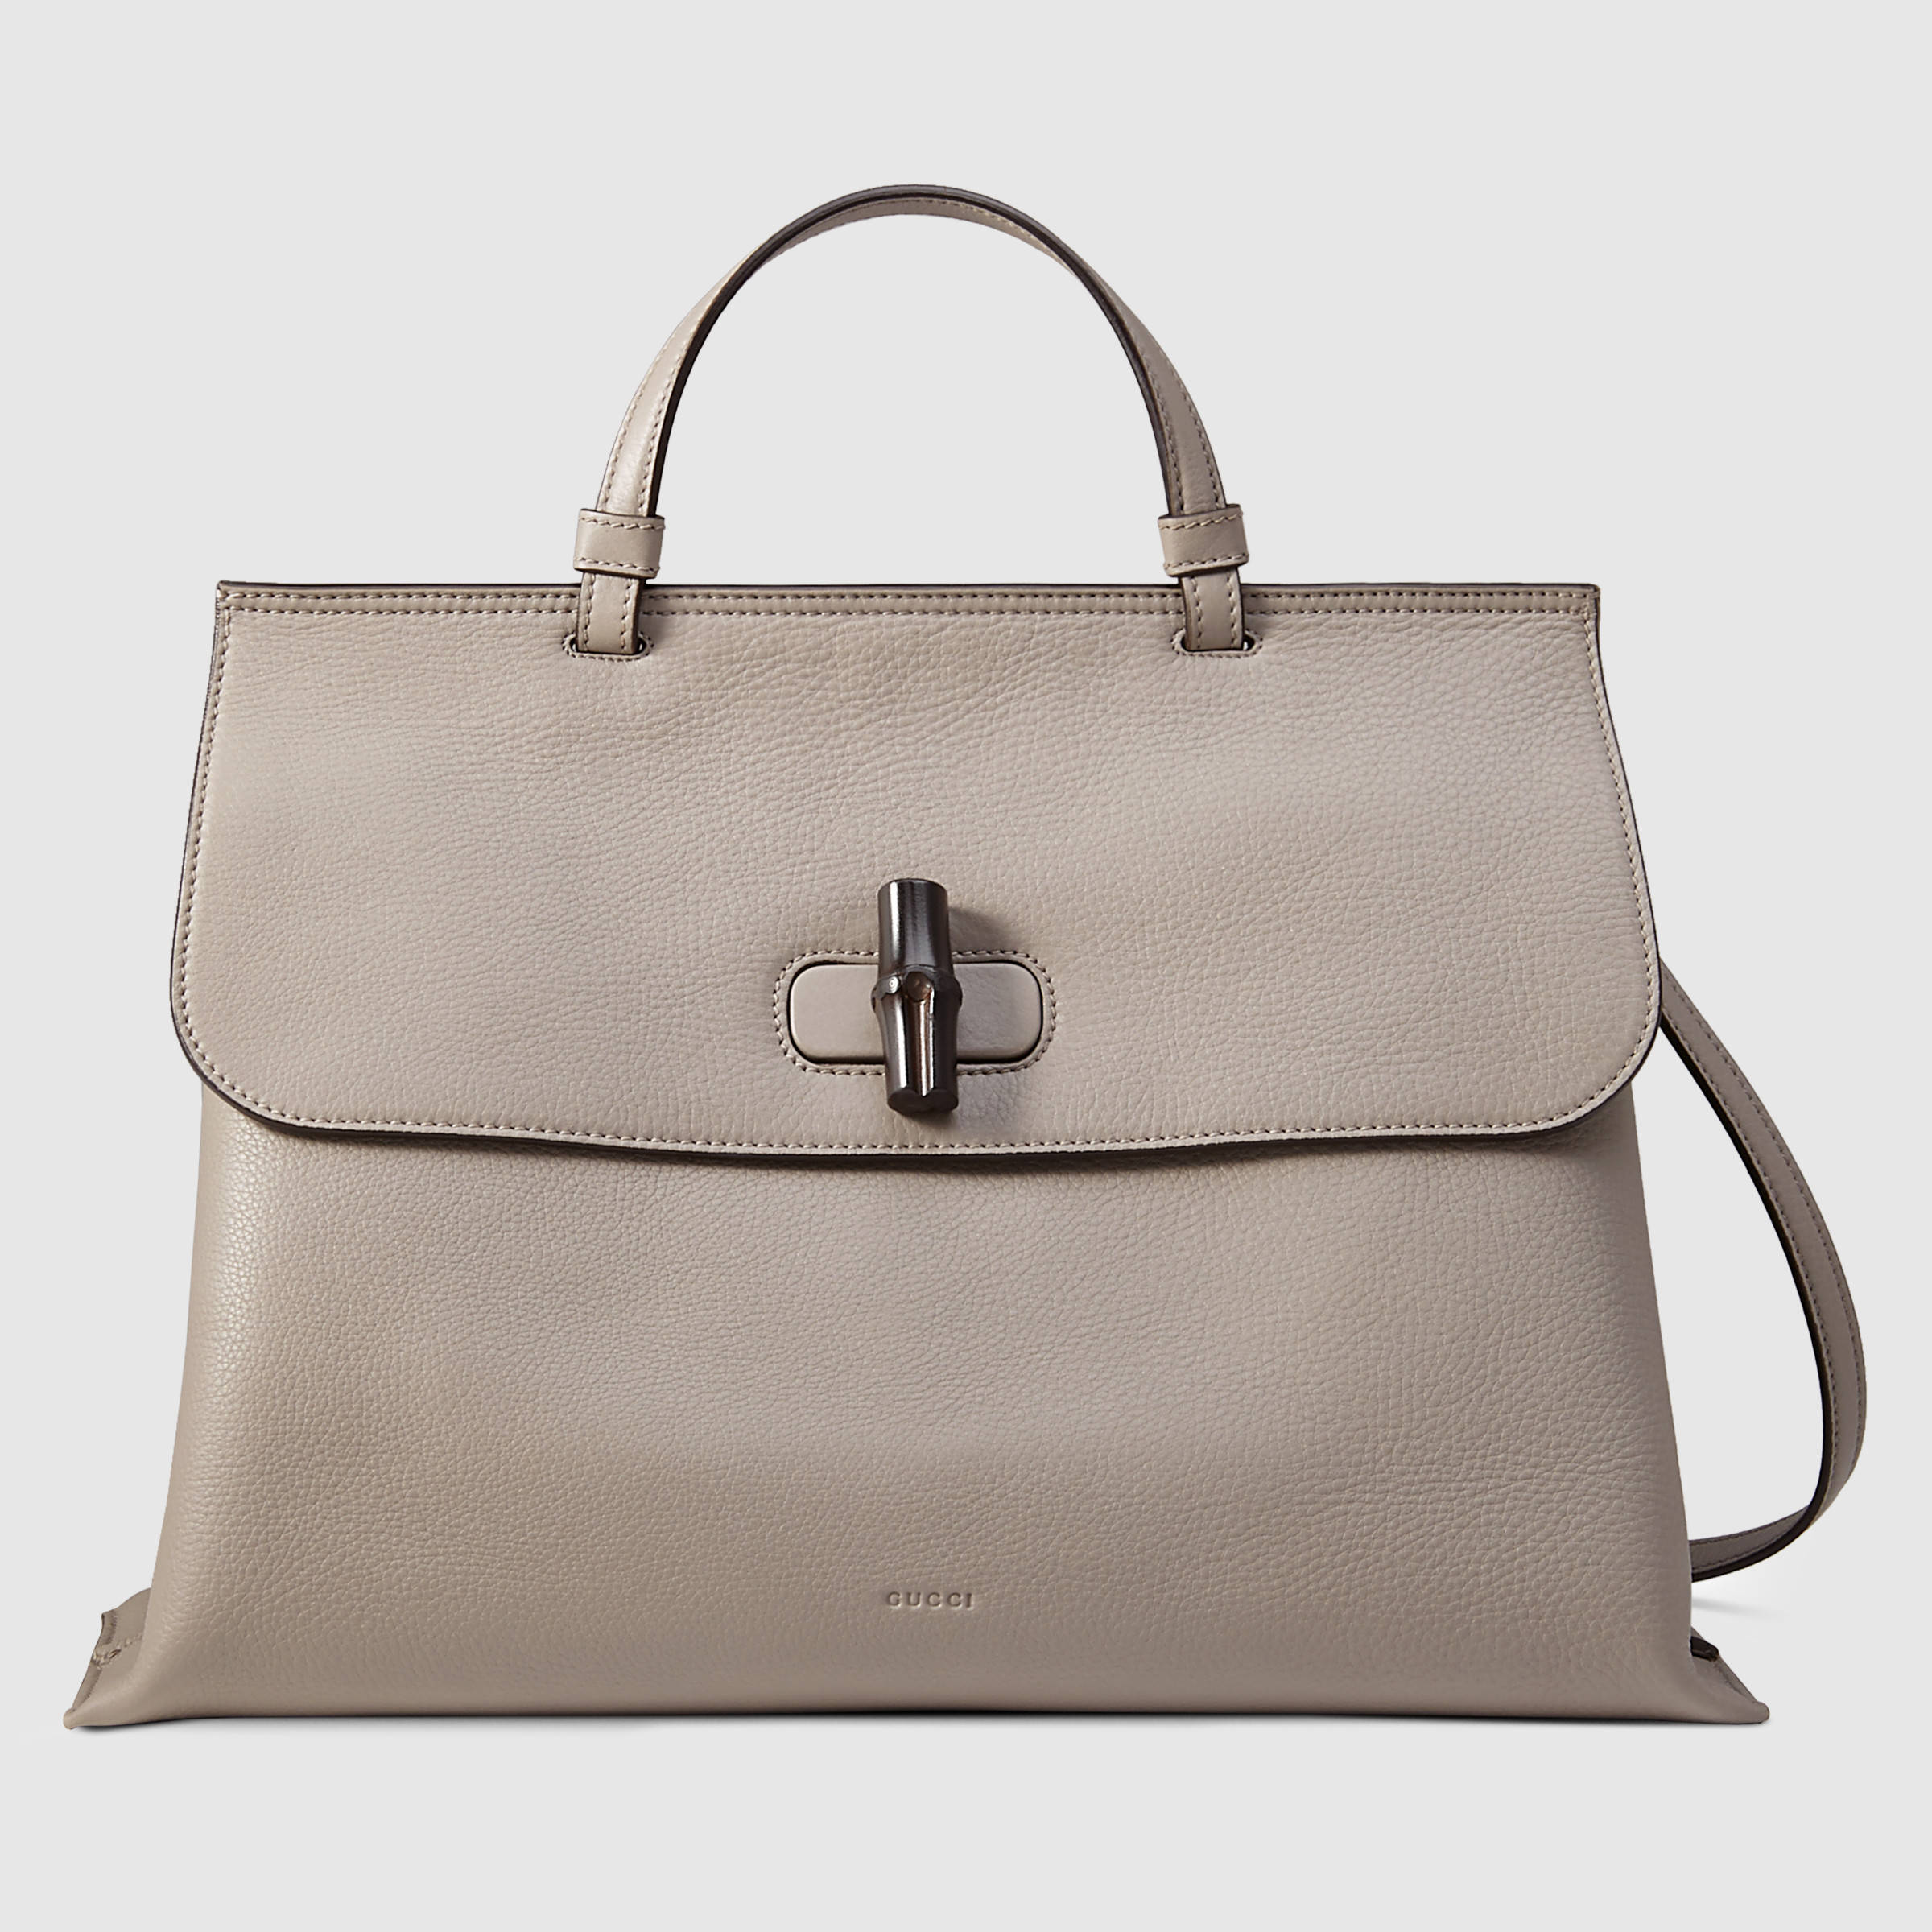 Are You Looking For A Trendy And Elegant Gucci Bamboo